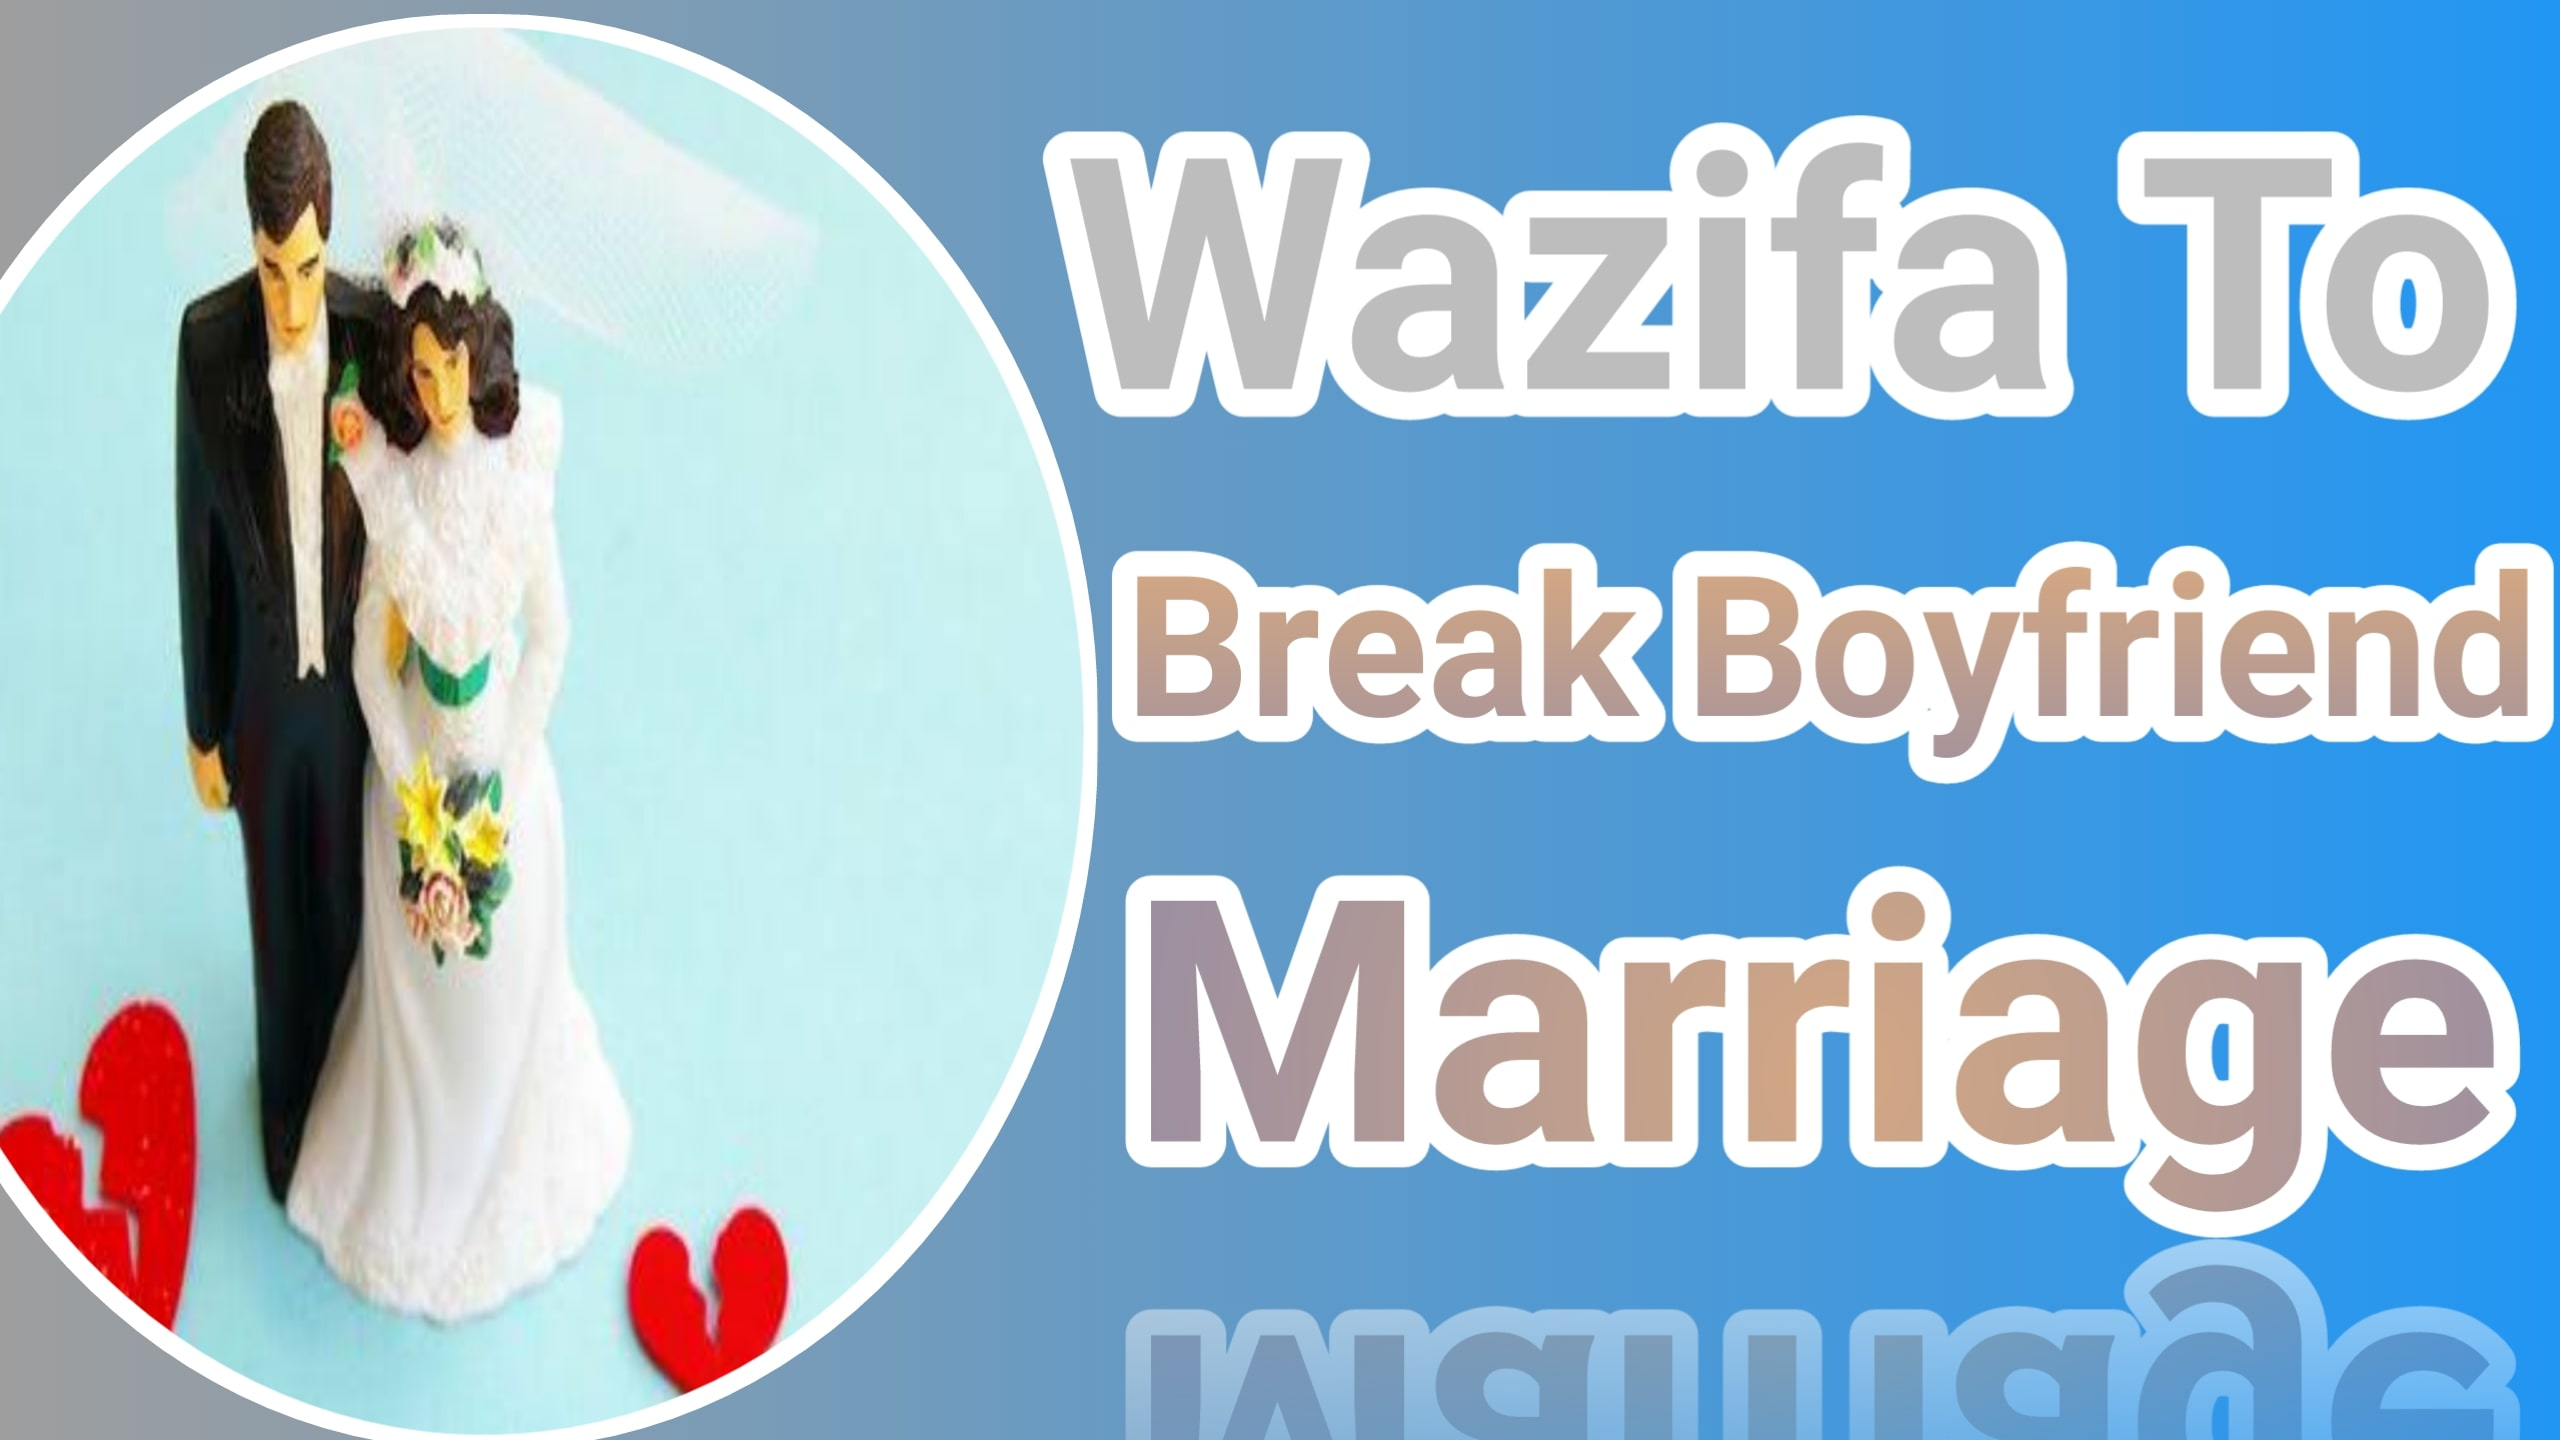 Wazifa to break boyfriend marriage